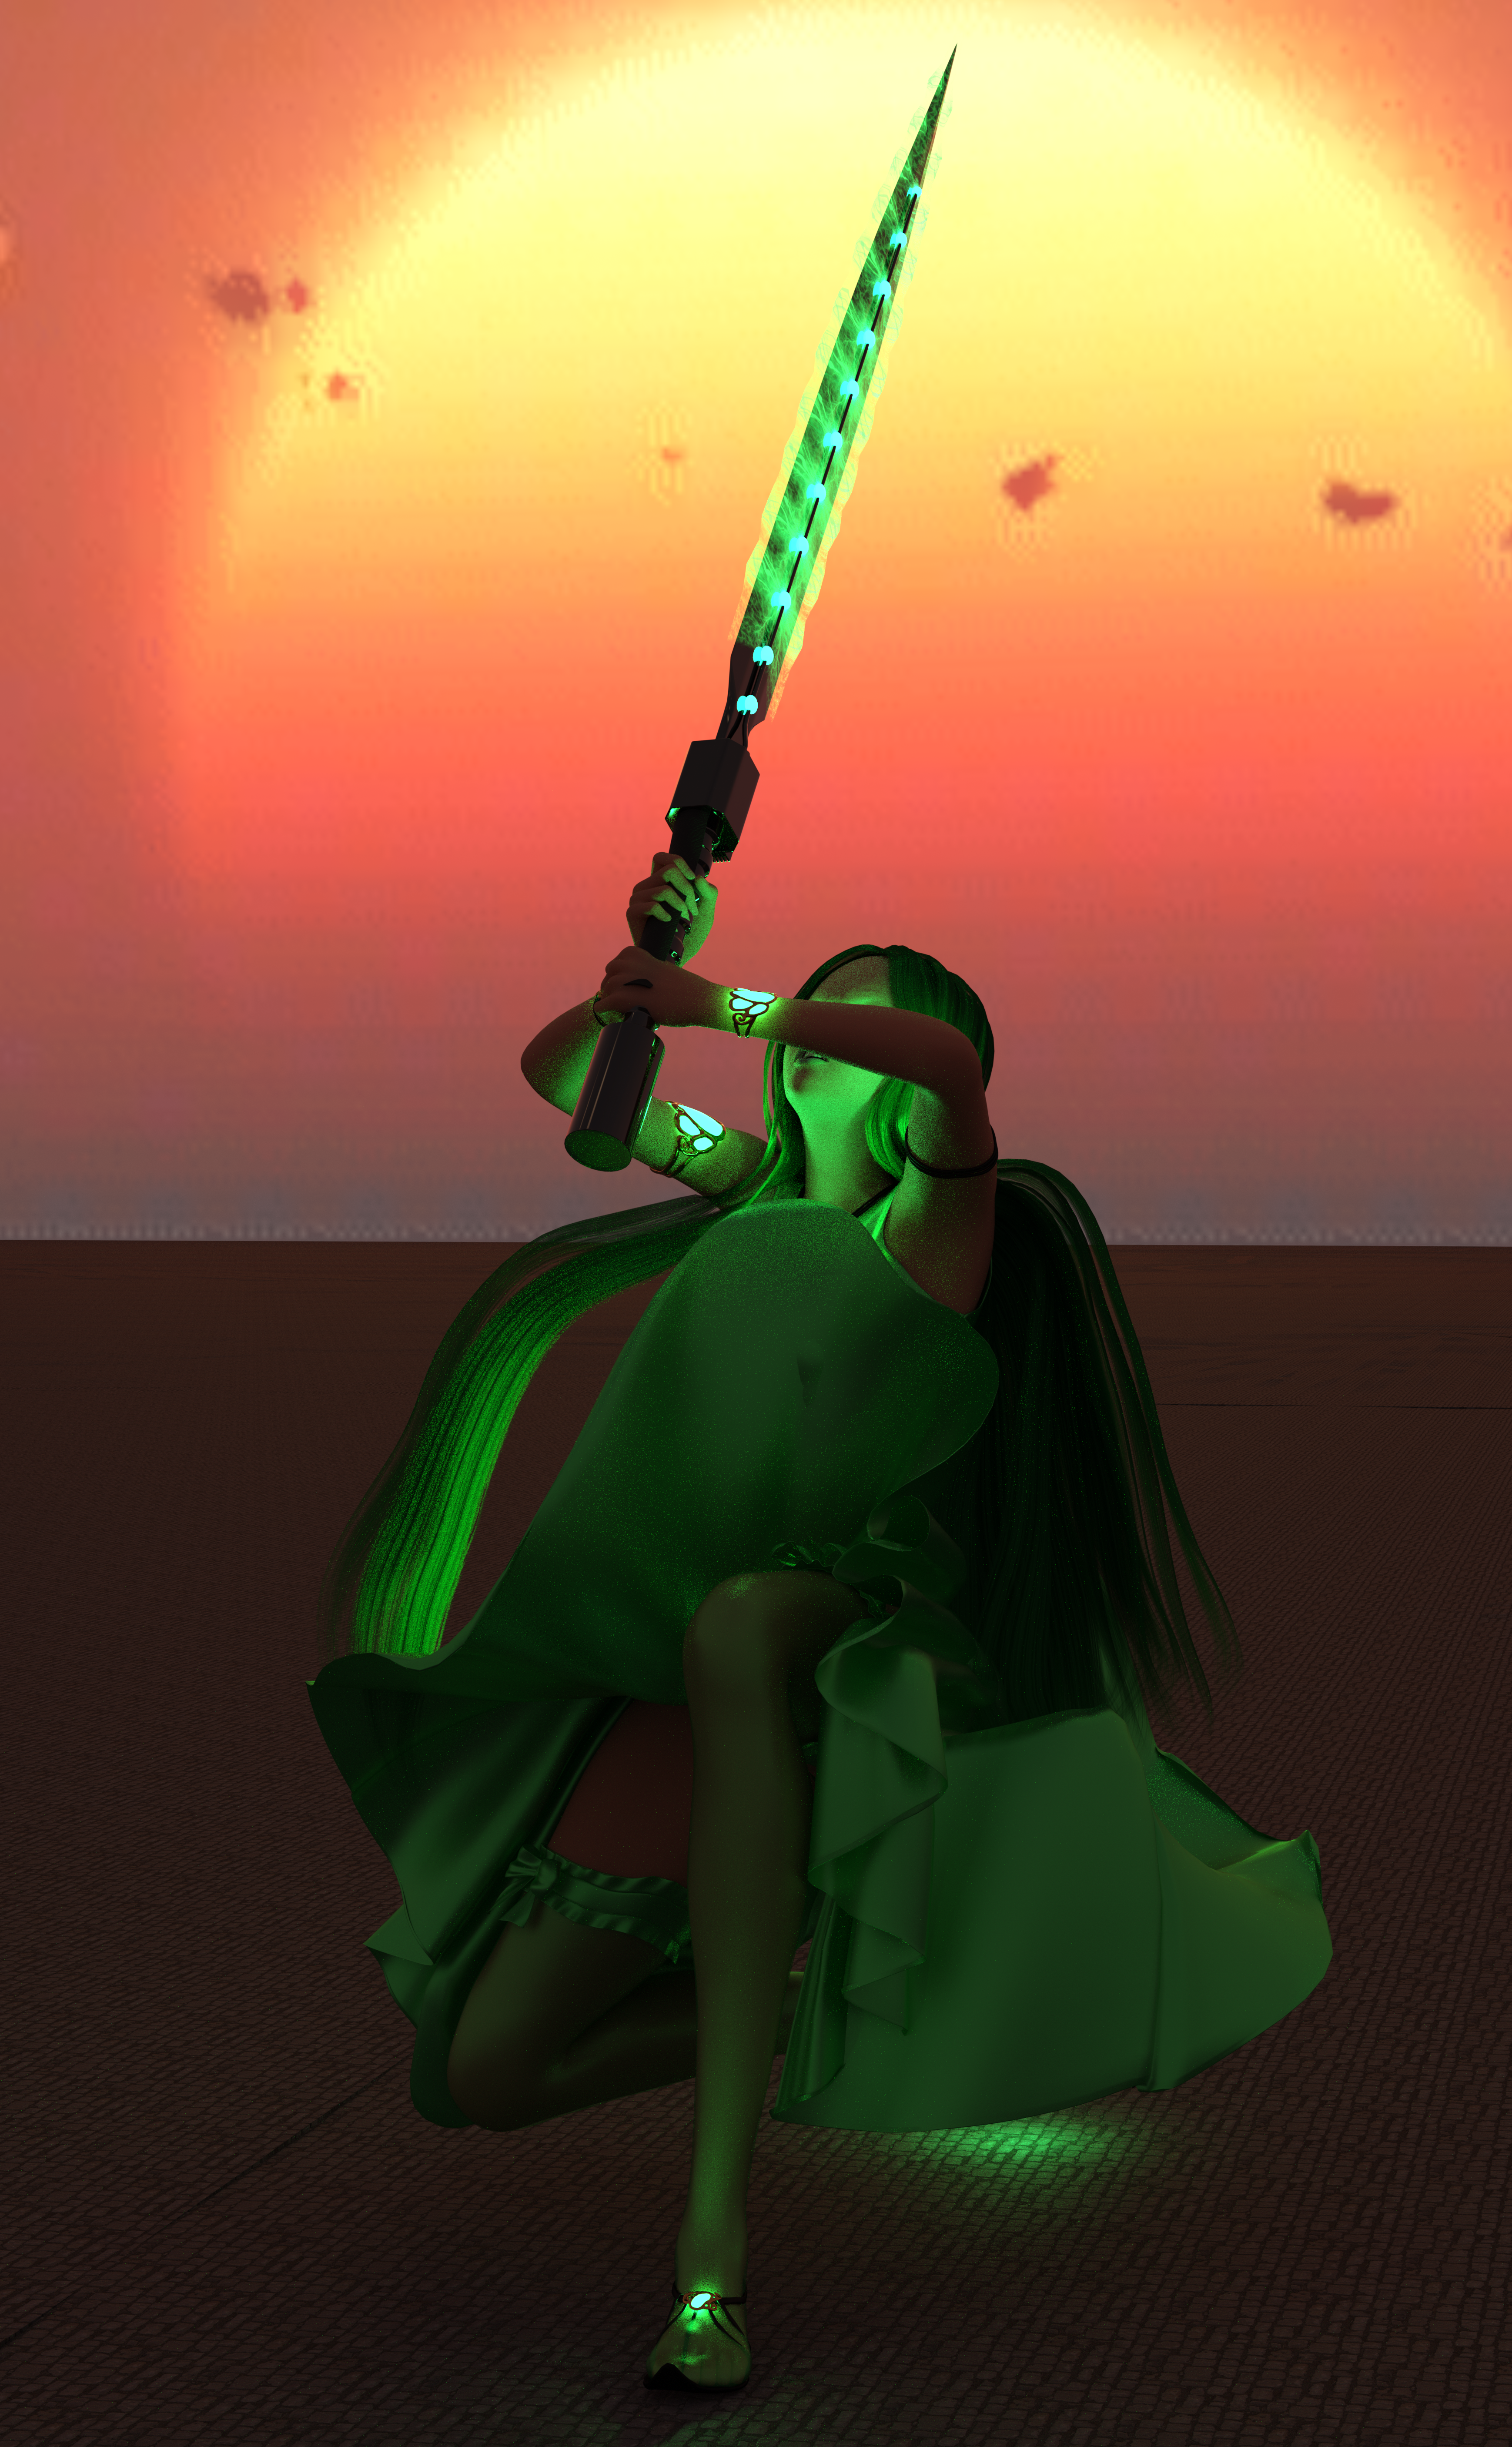 A woman with malachite clothes, malachite hair, a sword charged with malachite magic, and glowing malachite eyes!